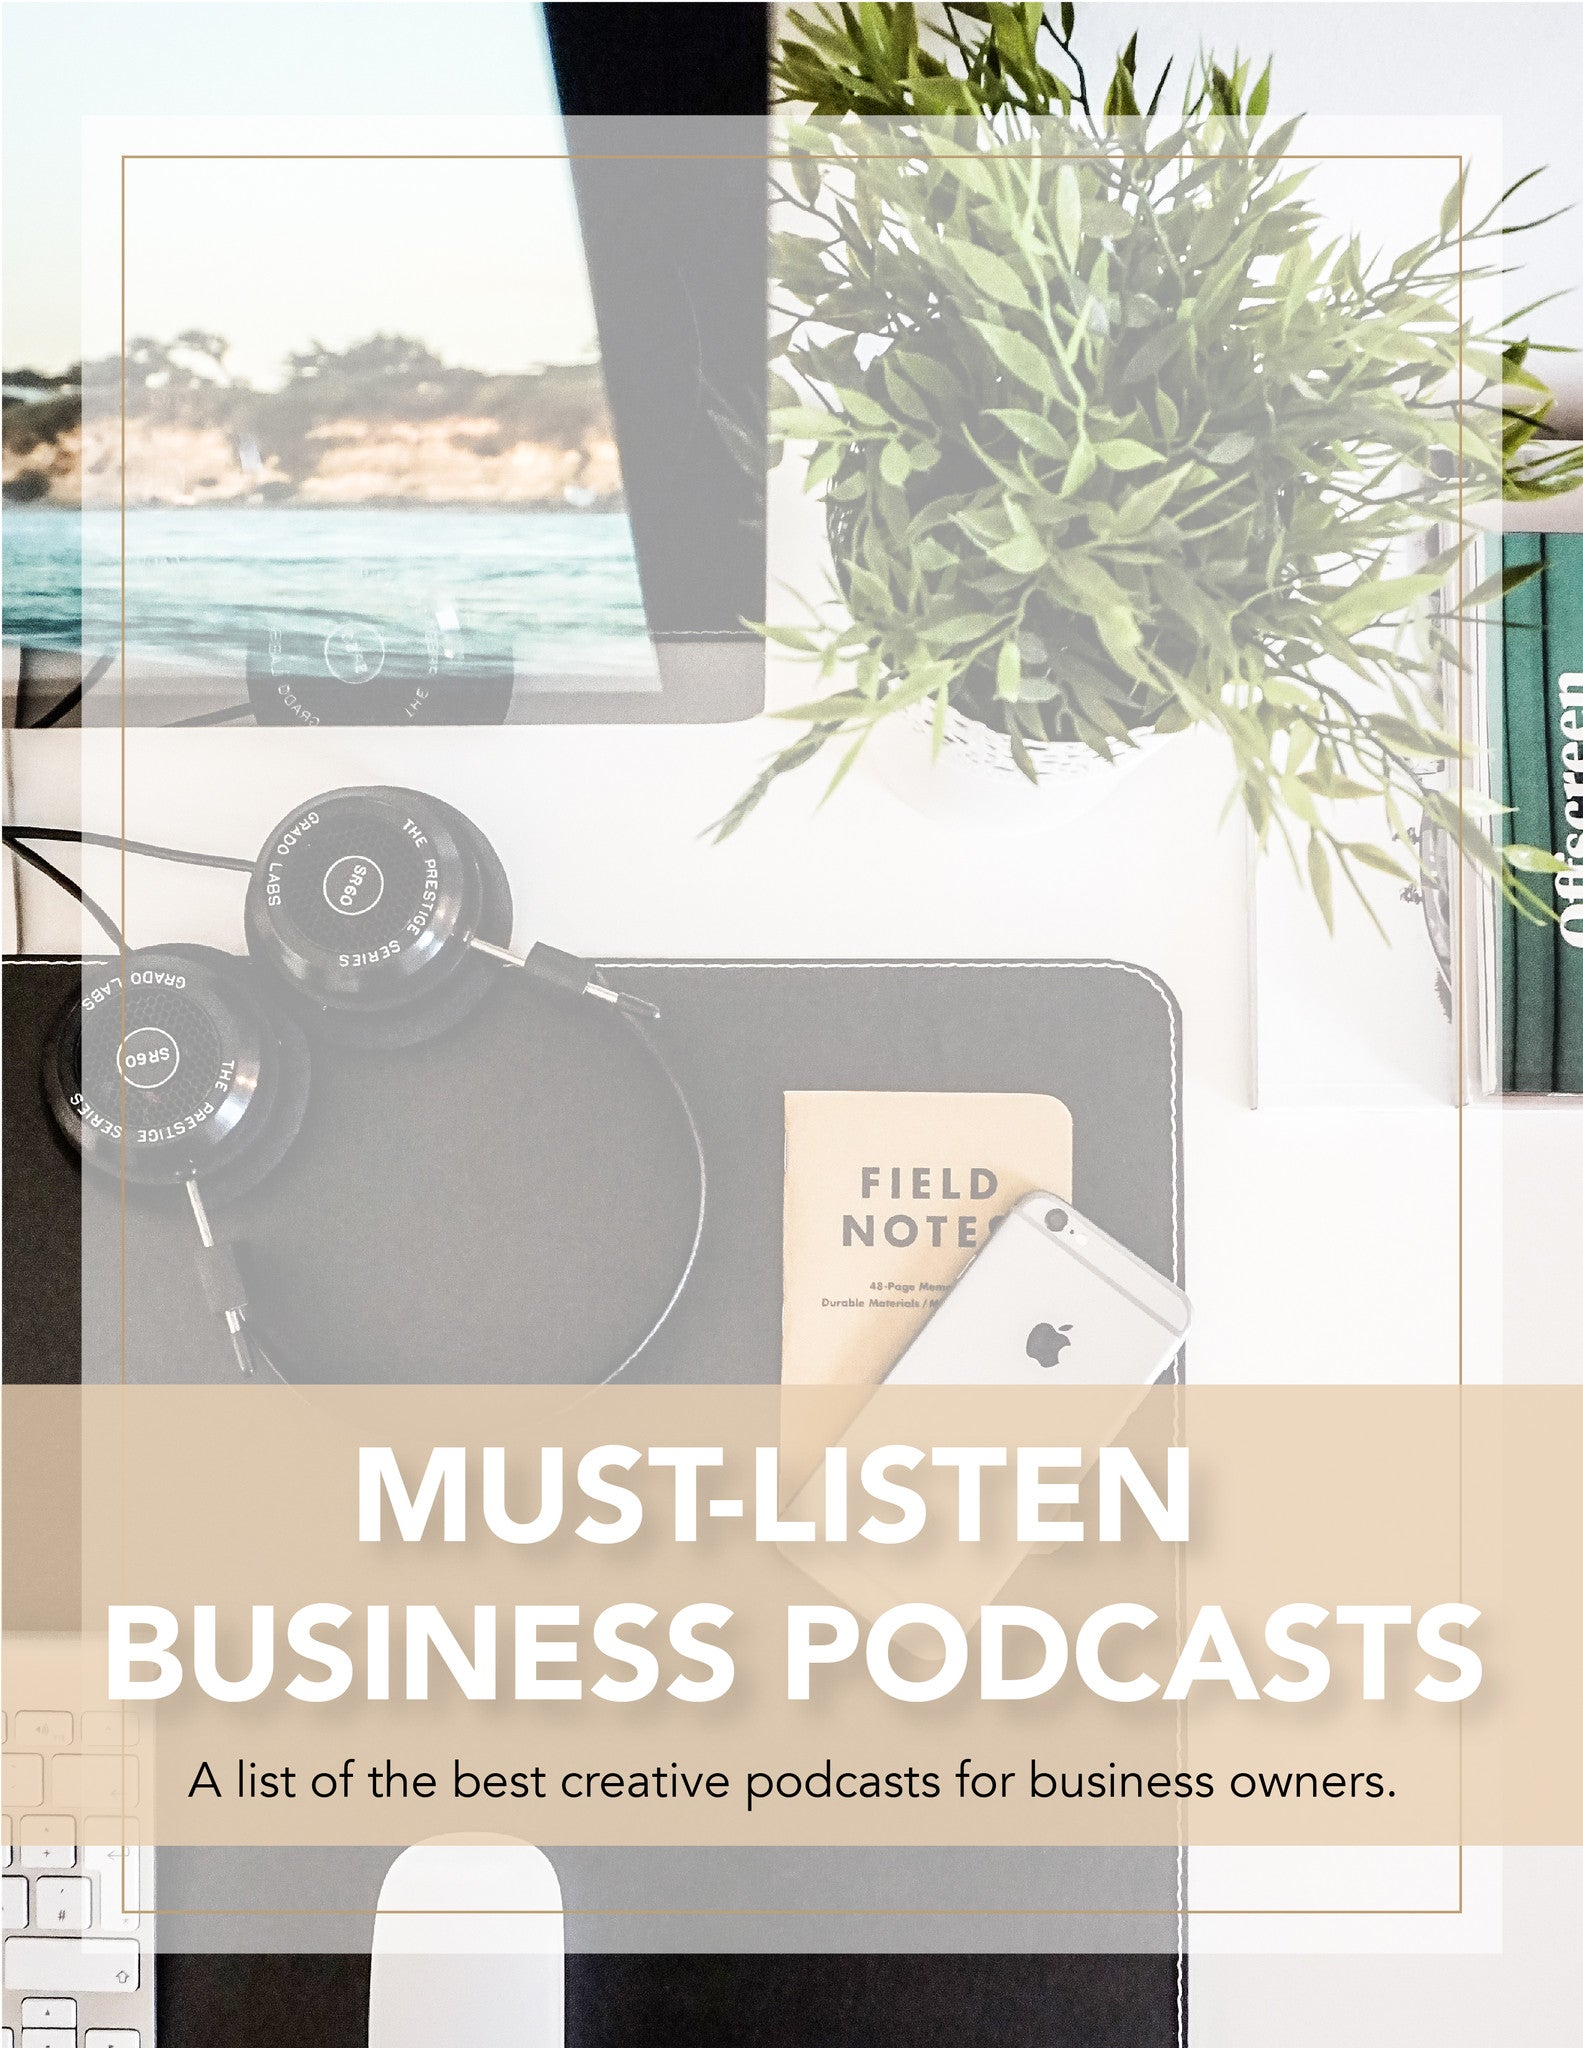 Top 10 Business Podcasts You Must Listen To For Creative Entrepreneurs